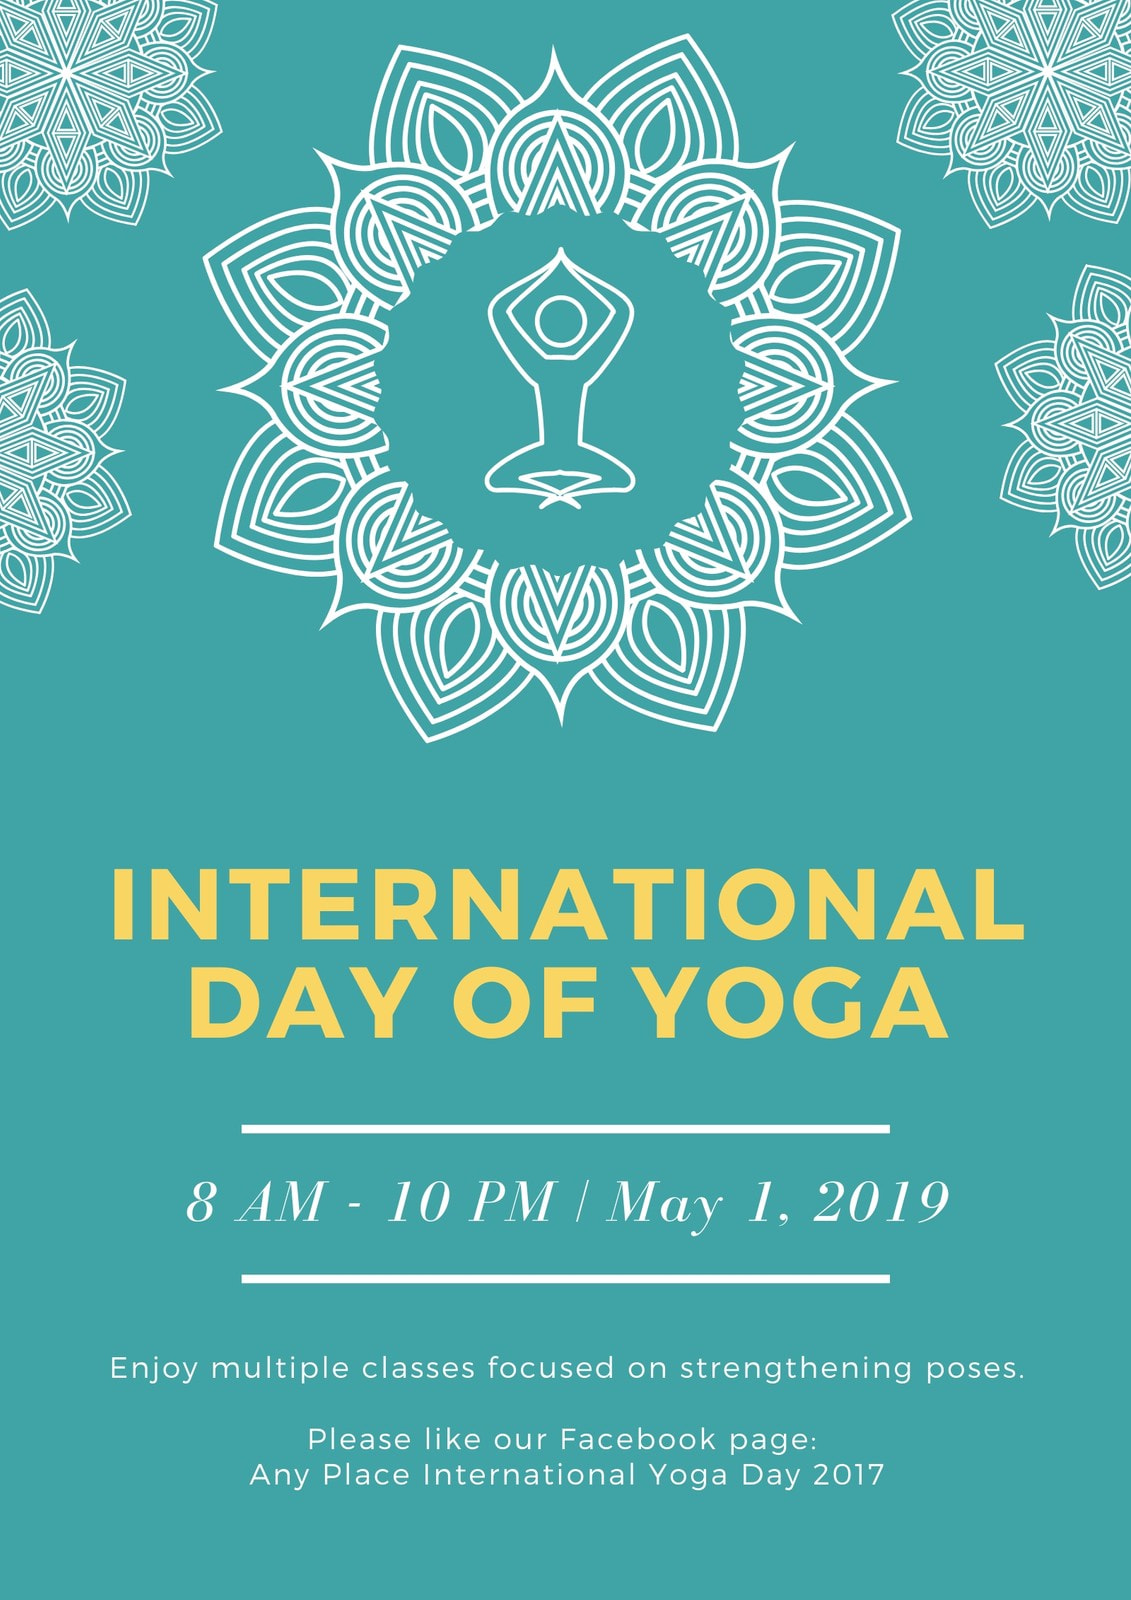 Green and White Ornate International Day of Yoga Poster